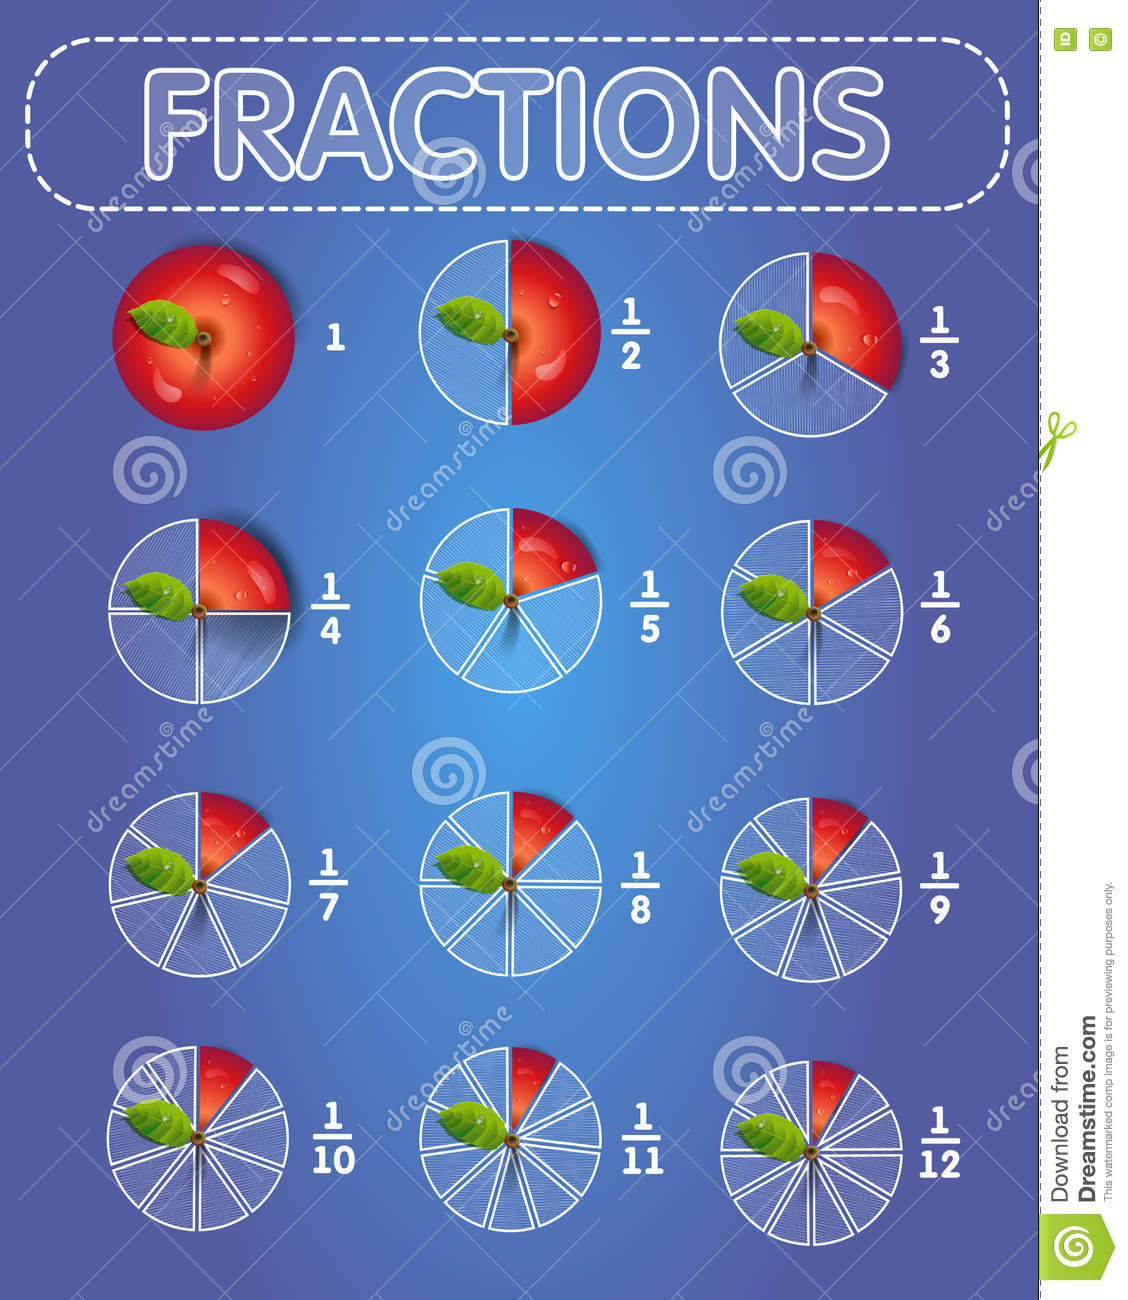 Fractions apple on top